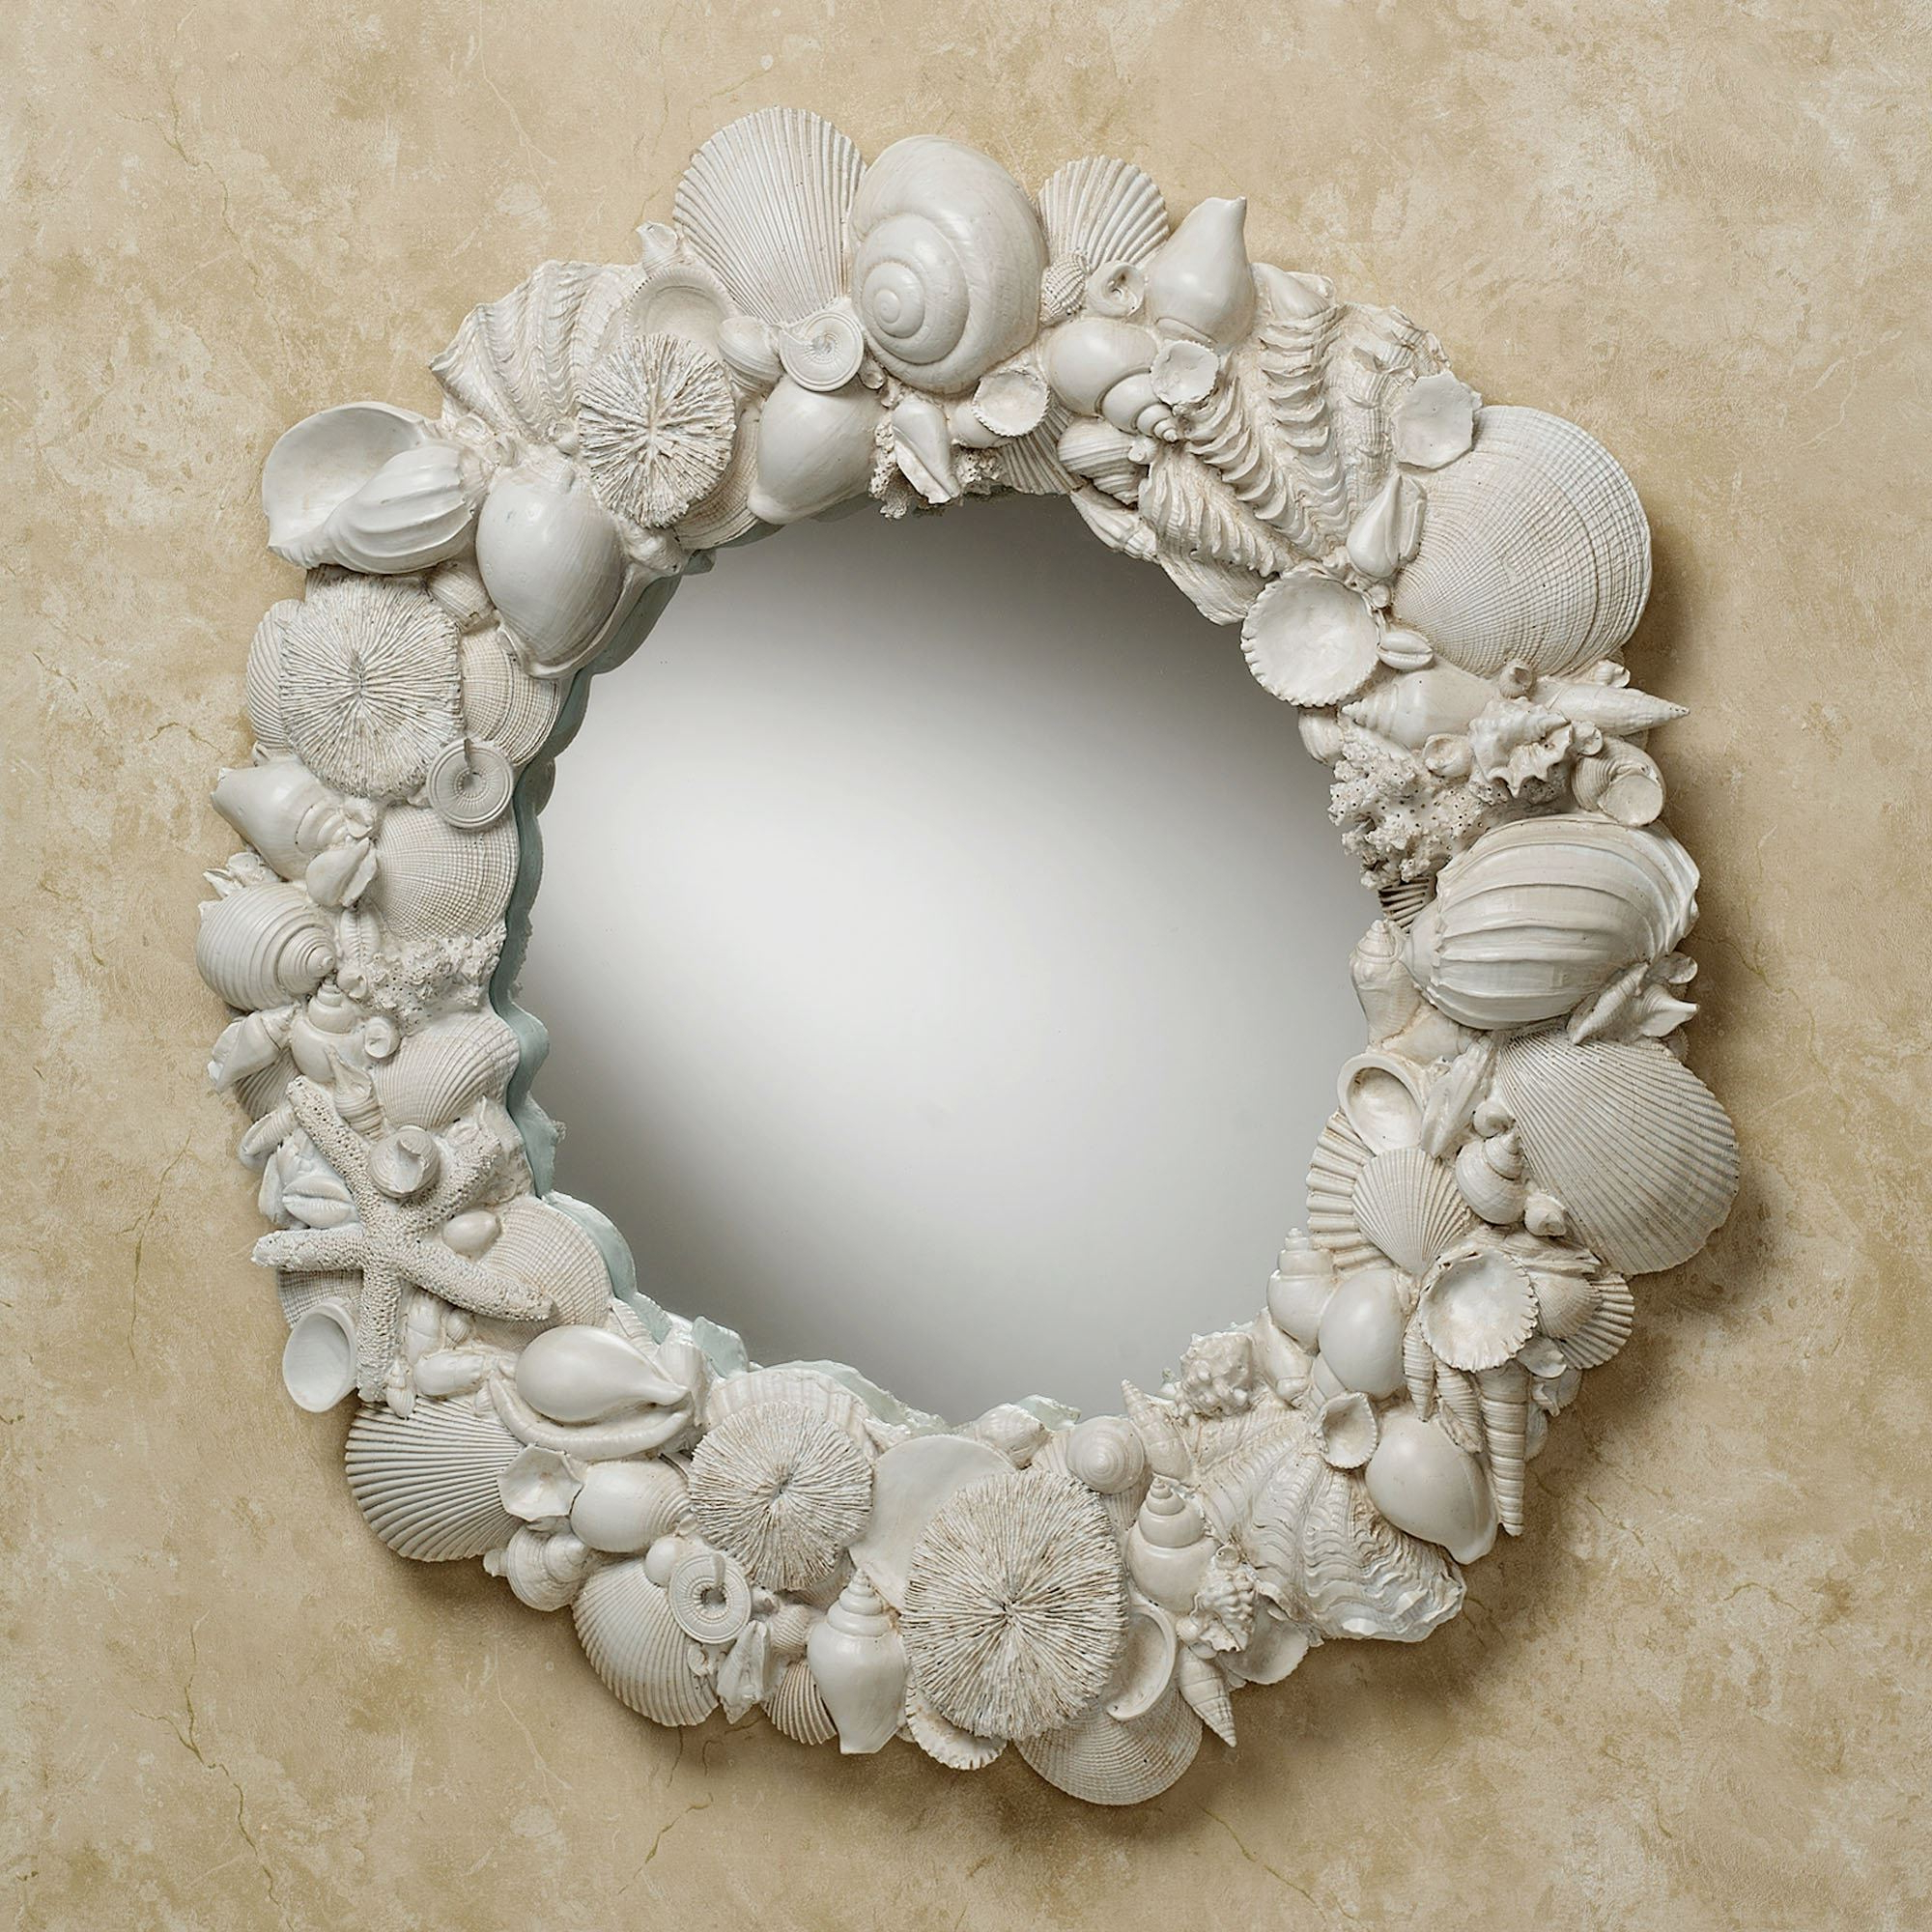 Most Popular Seashell Melange Round Coastal Wall Mirror Pertaining To Seashell Wall Mirrors (View 6 of 20)